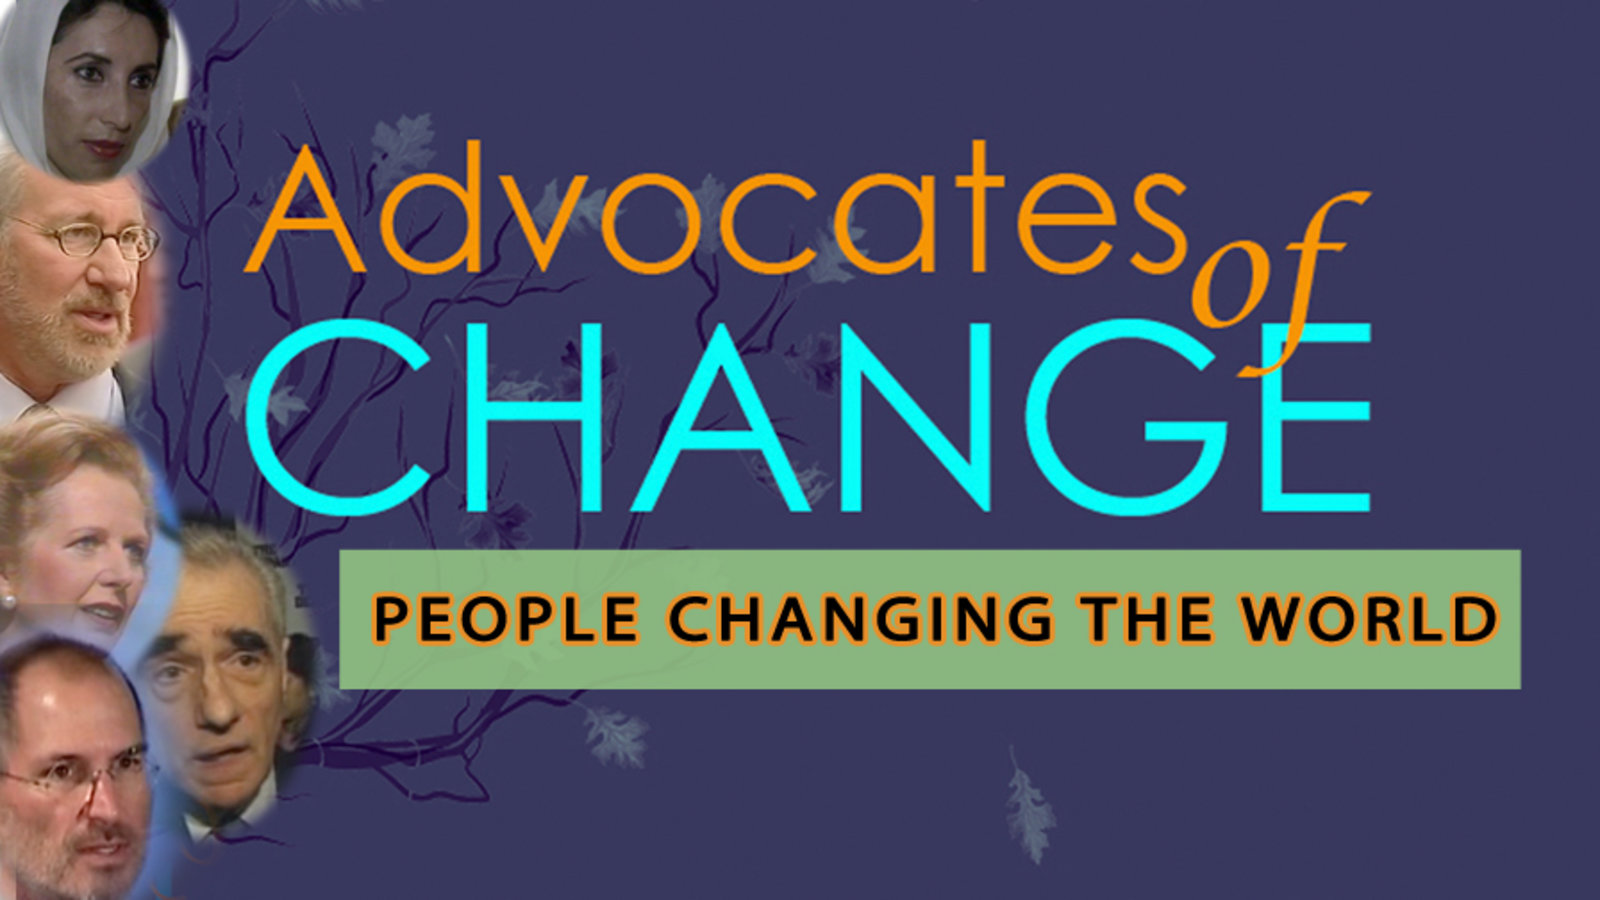 Advocates of Change